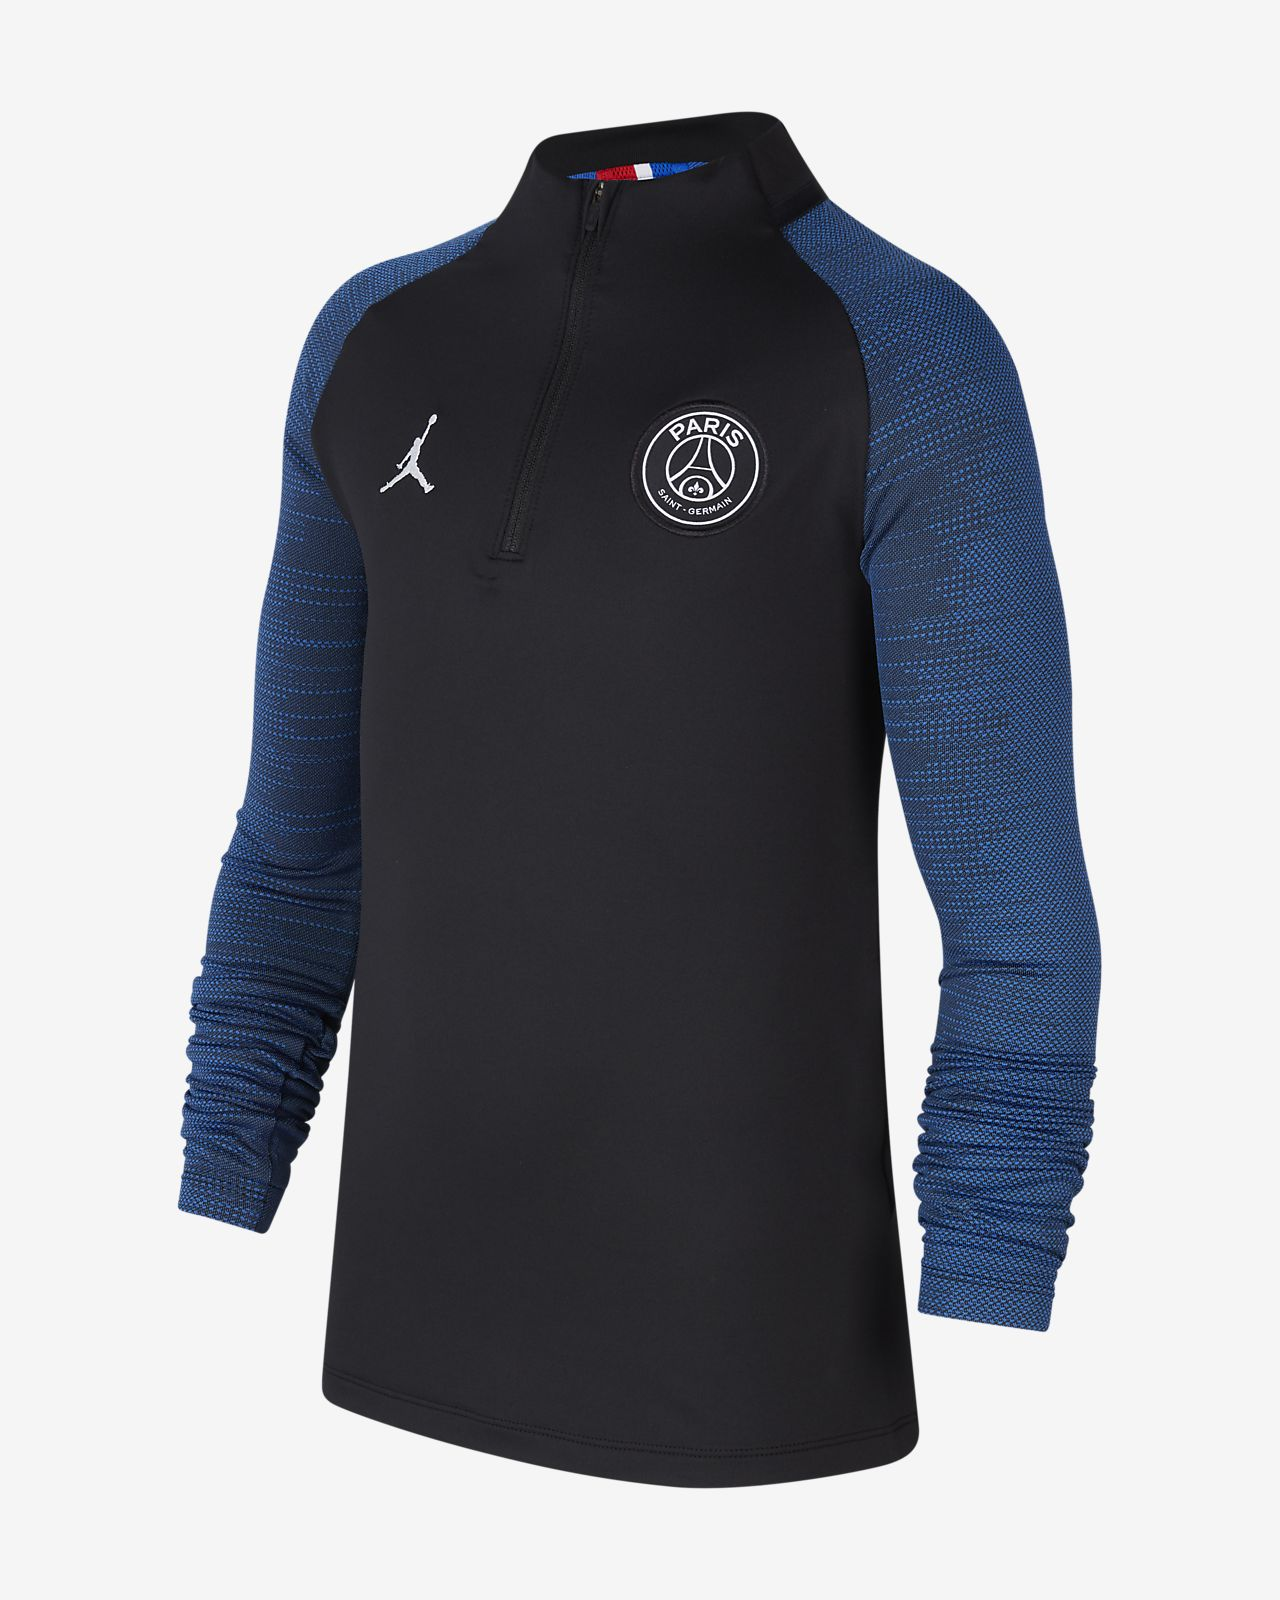 Jordan x Paris Saint-Germain Dri-FIT Strike Older Kids' Football Drill Top